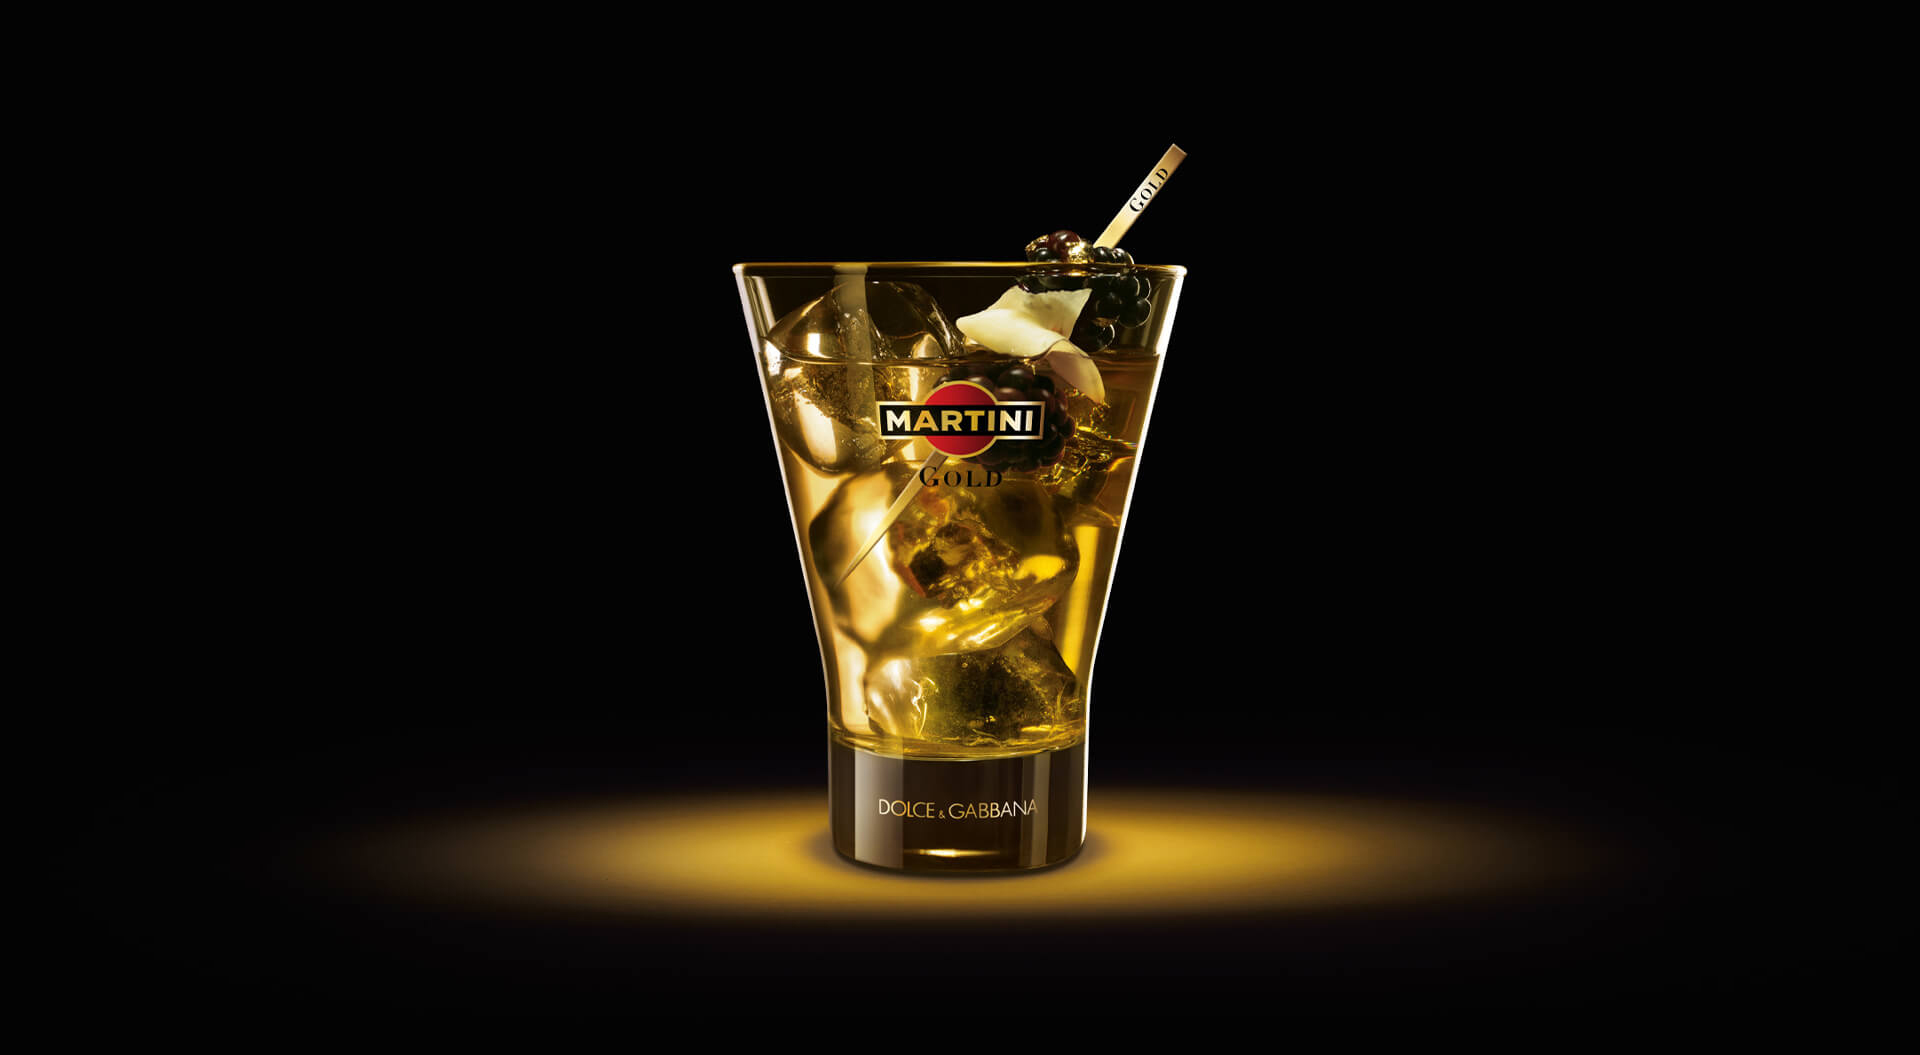 Spirits industry promotion campaigns travel retail, strategy marketing, retail design, airports, duty-free alcohol marketing, innovative concepts ideas Bacardi Global Travel Retail, brand  Bombay Sapphire East